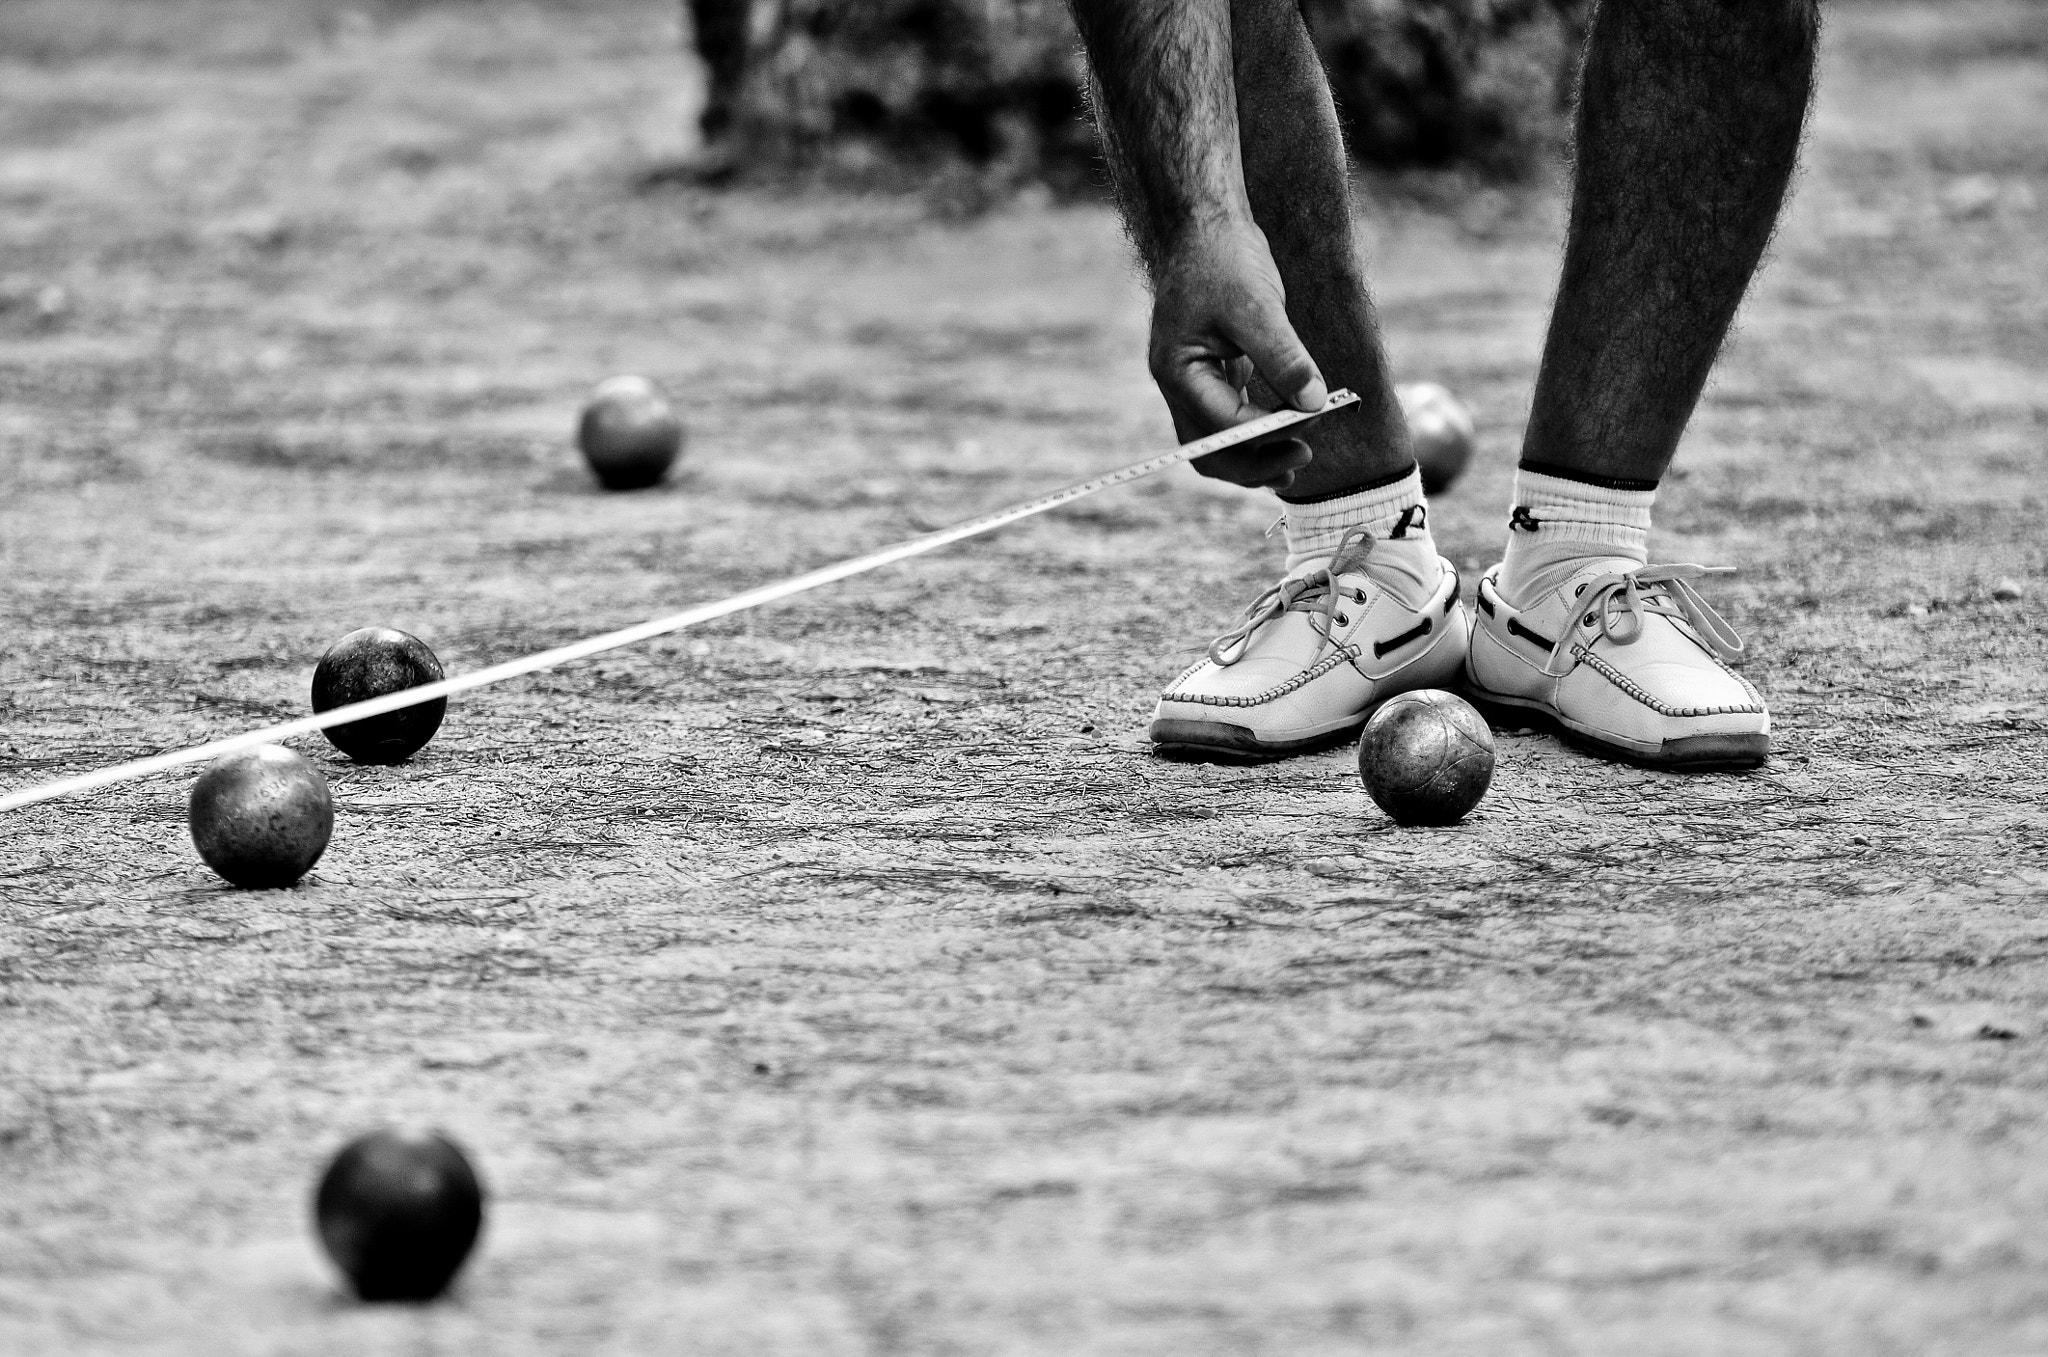 Photograph Match point by Pierre Meunier on 500px